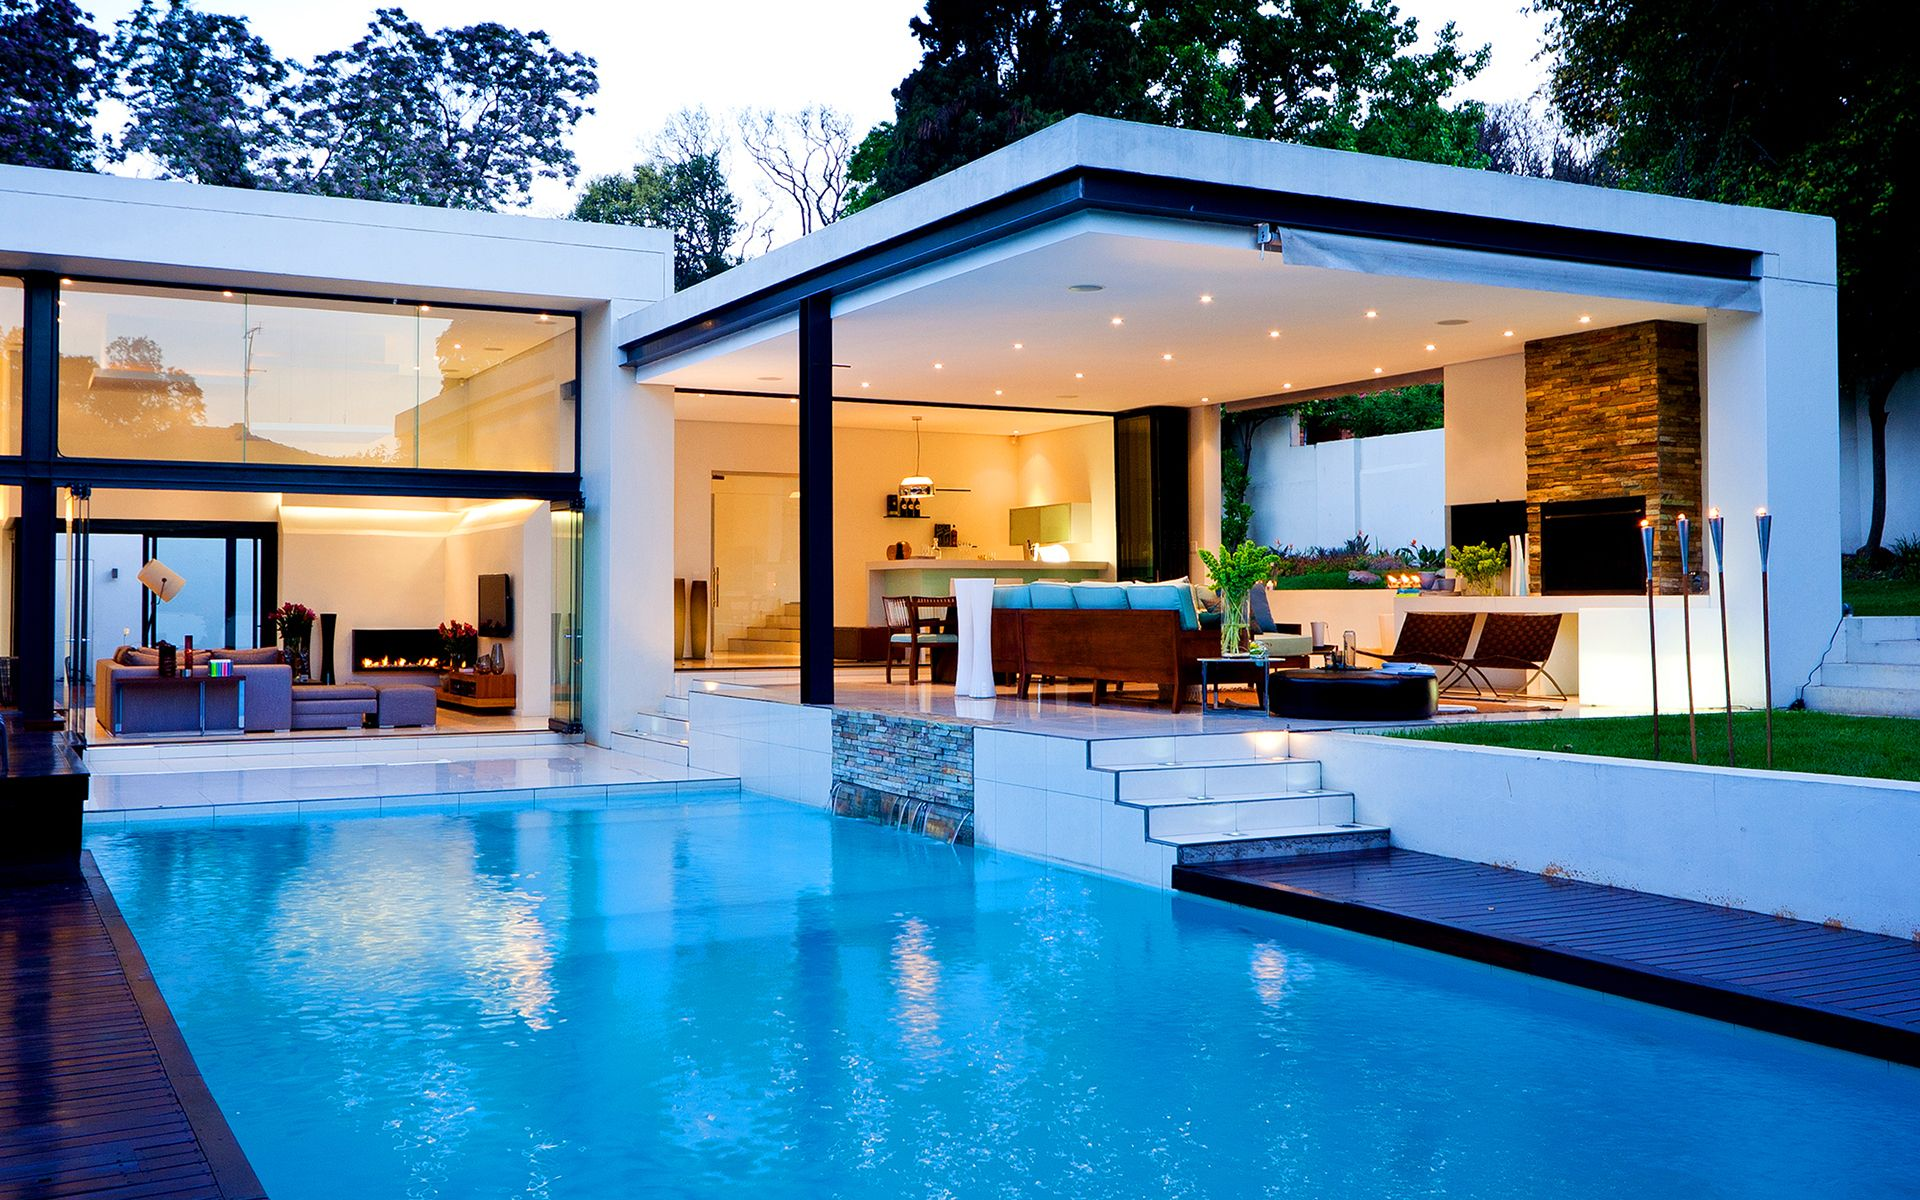 Luxury House With Pool Jpg 1 920 1 200 Pixels Pool House Designs Modern Patio Design Flat Roof House